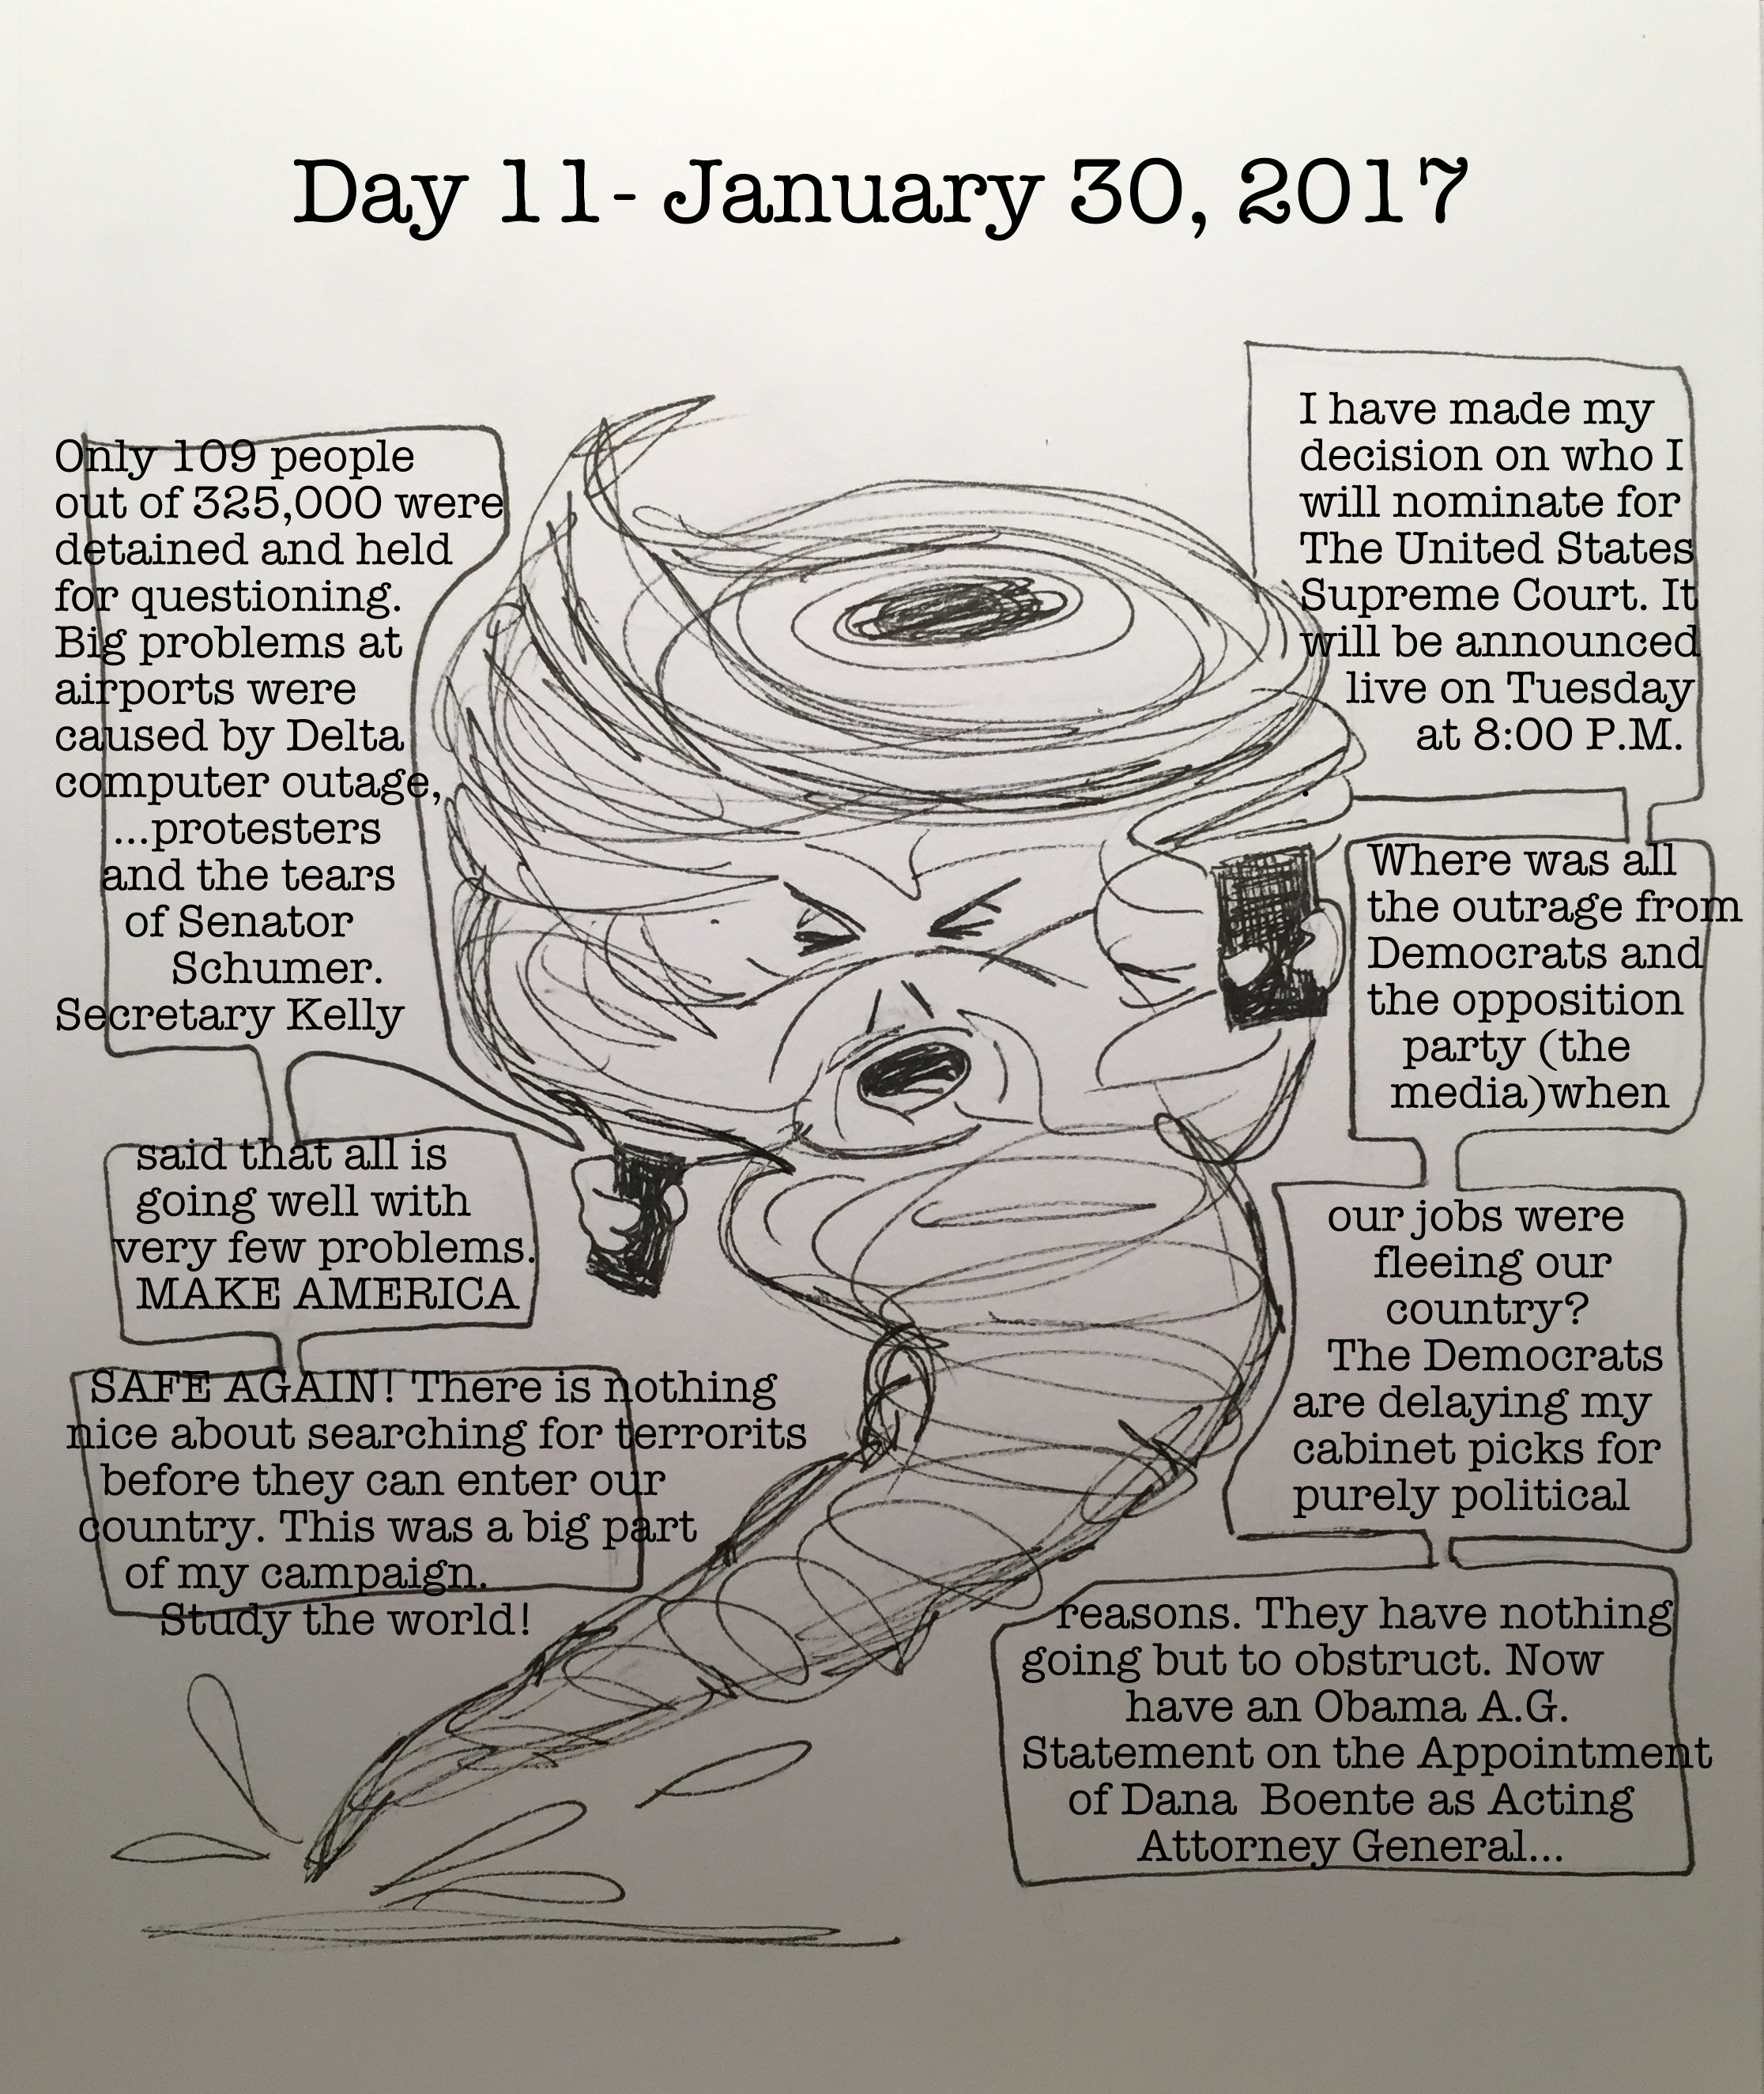 Day 11- January 30, 2017- Copyright 2017